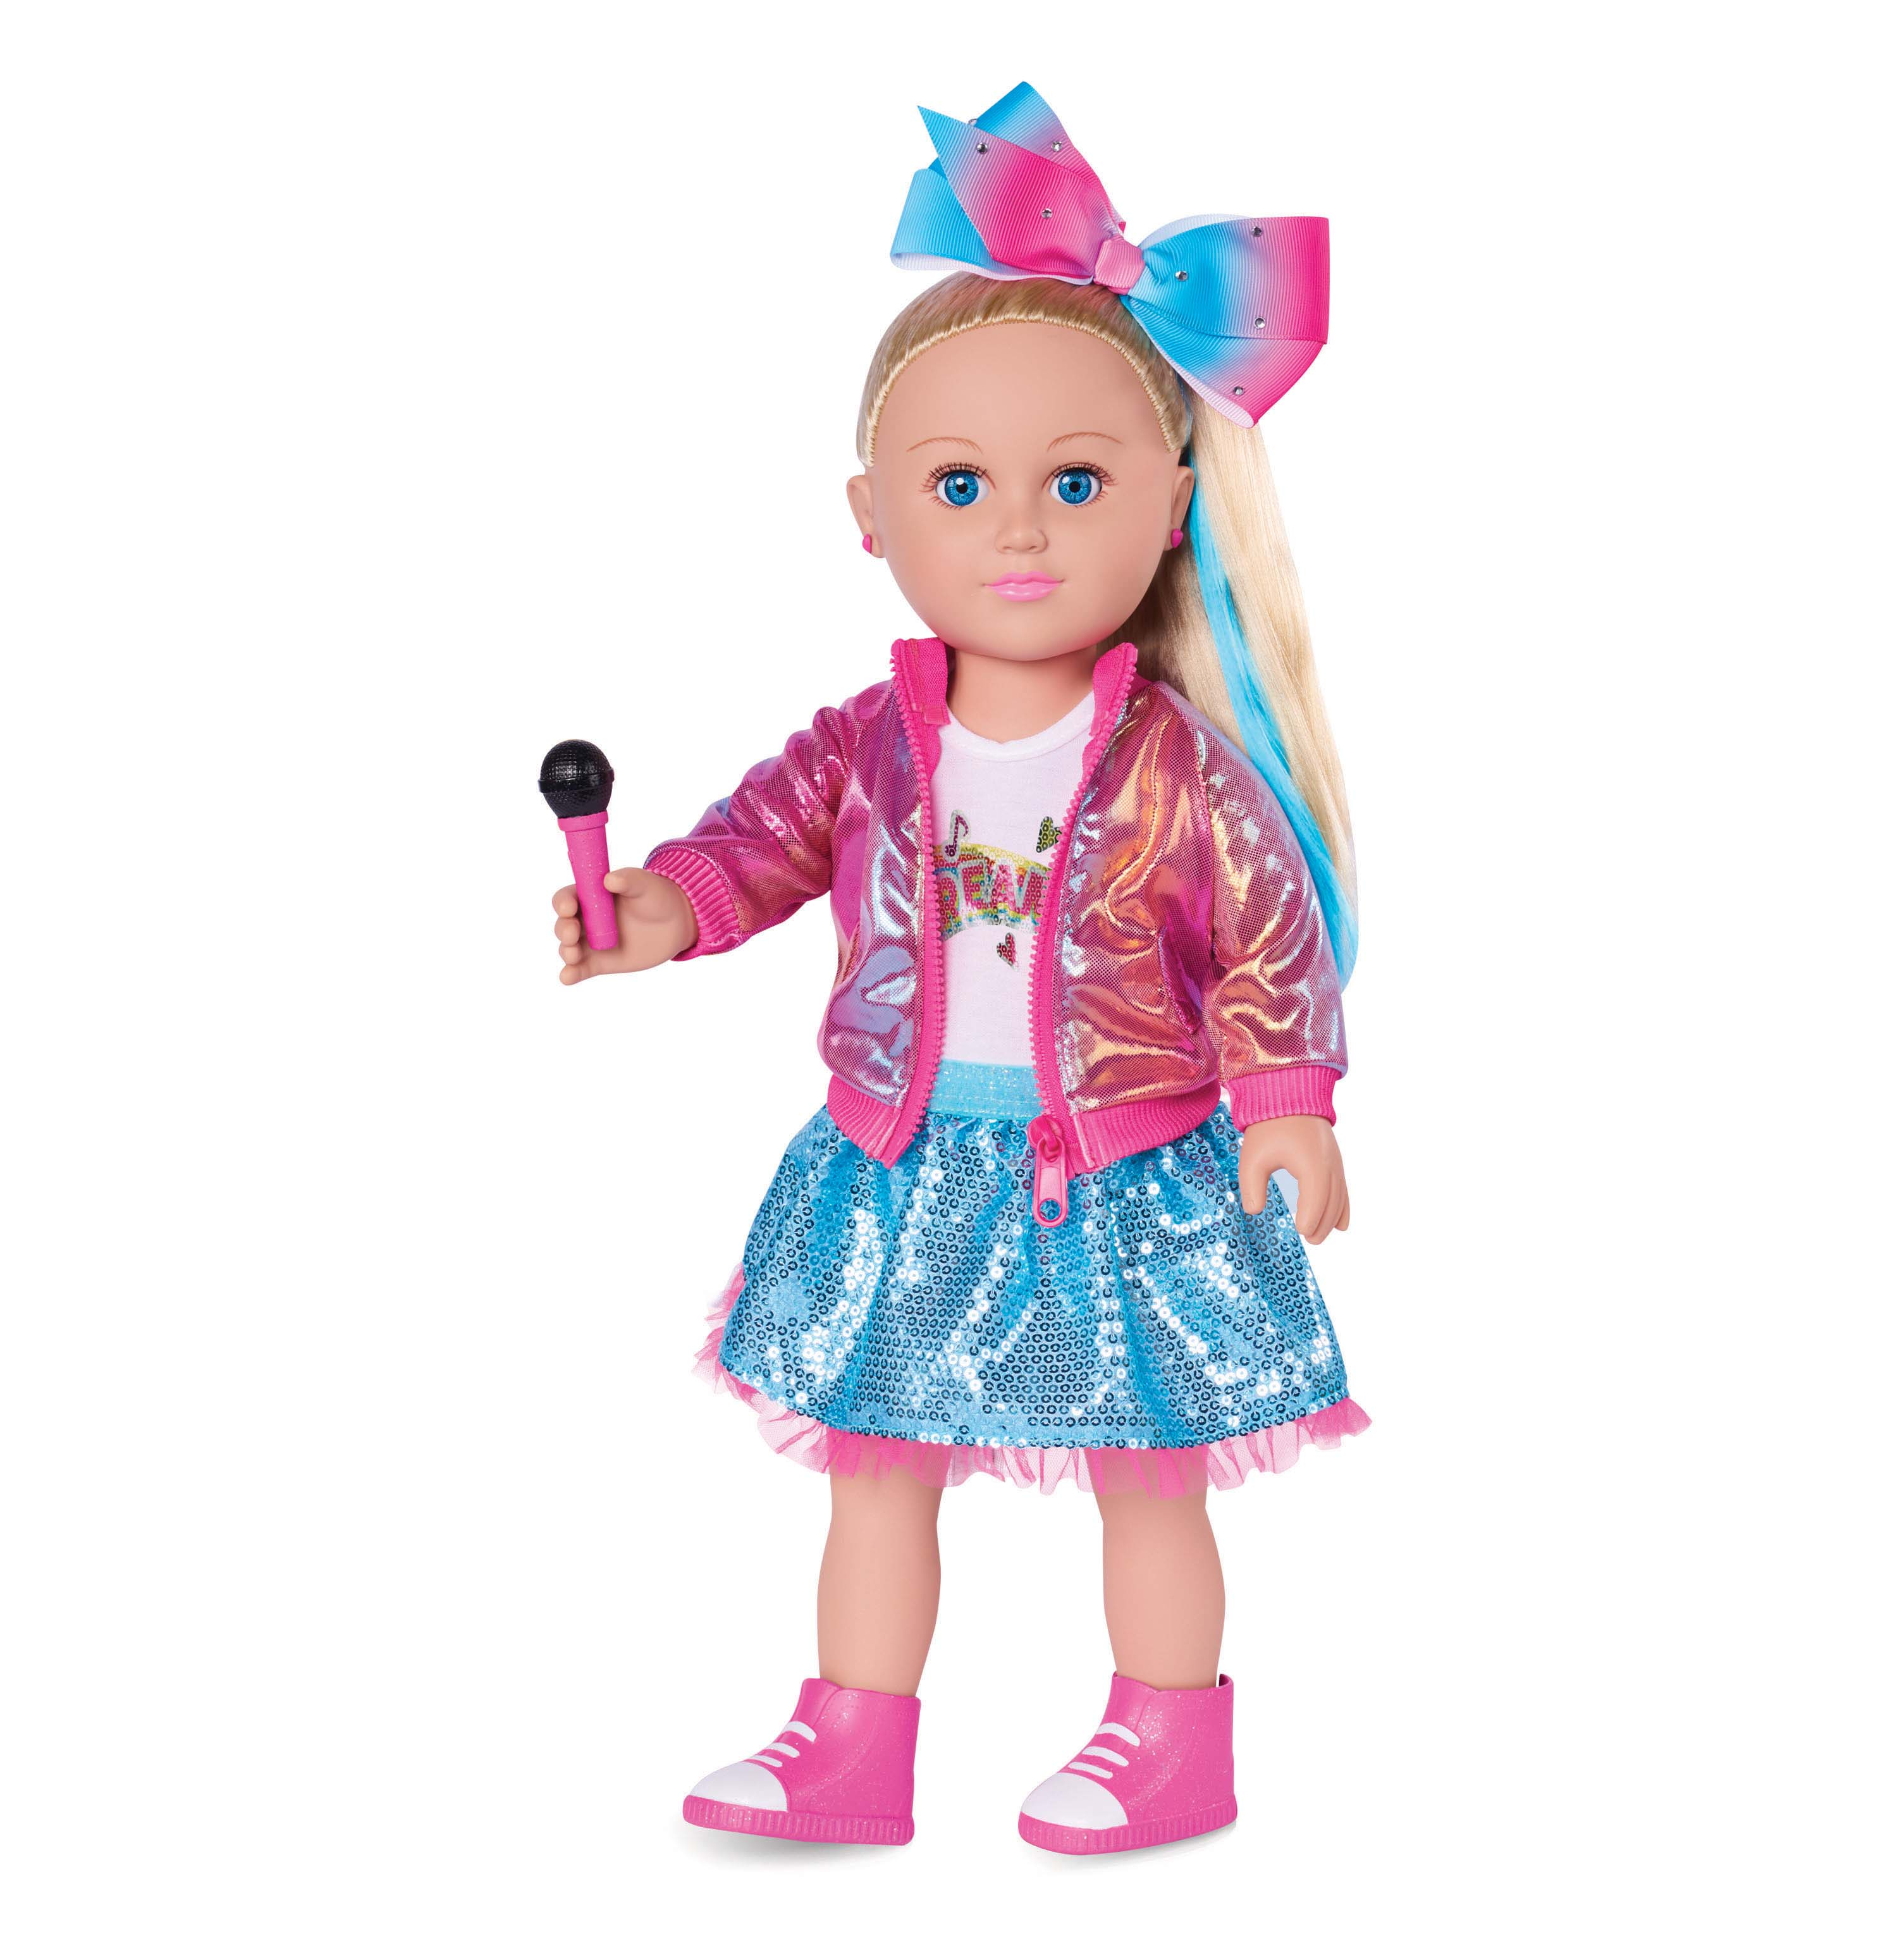 """18/"""" American Girl Doll Accossory Pink Mirror from Truly Me School Locker Set Toy"""